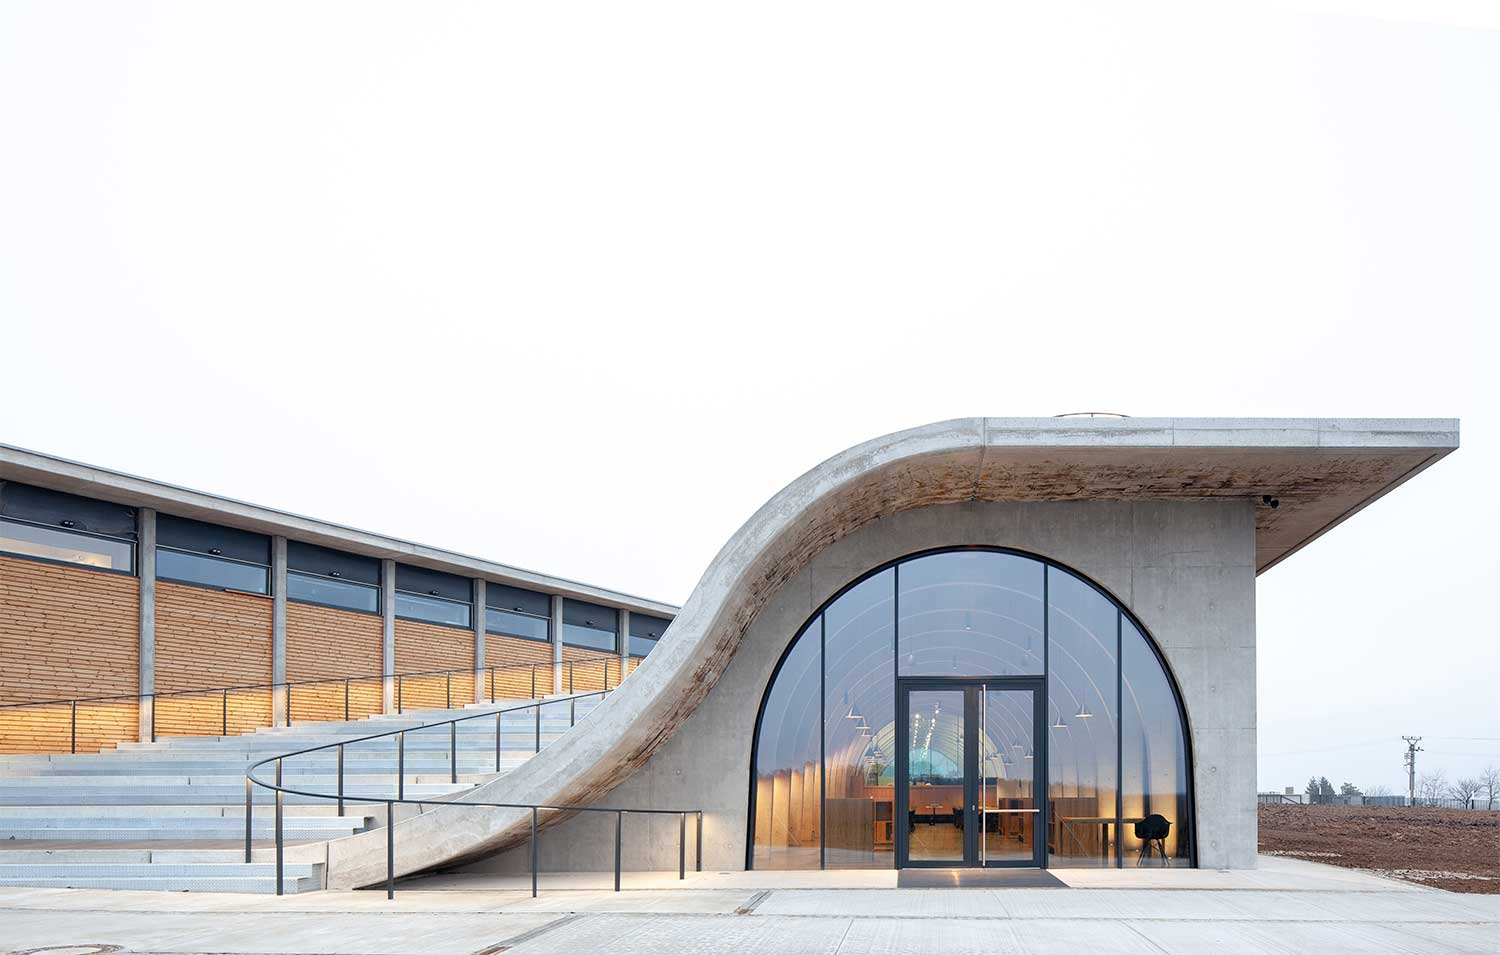 The Lahofer Winery An Amphitheater Set Among The Vineyards Of Czechia